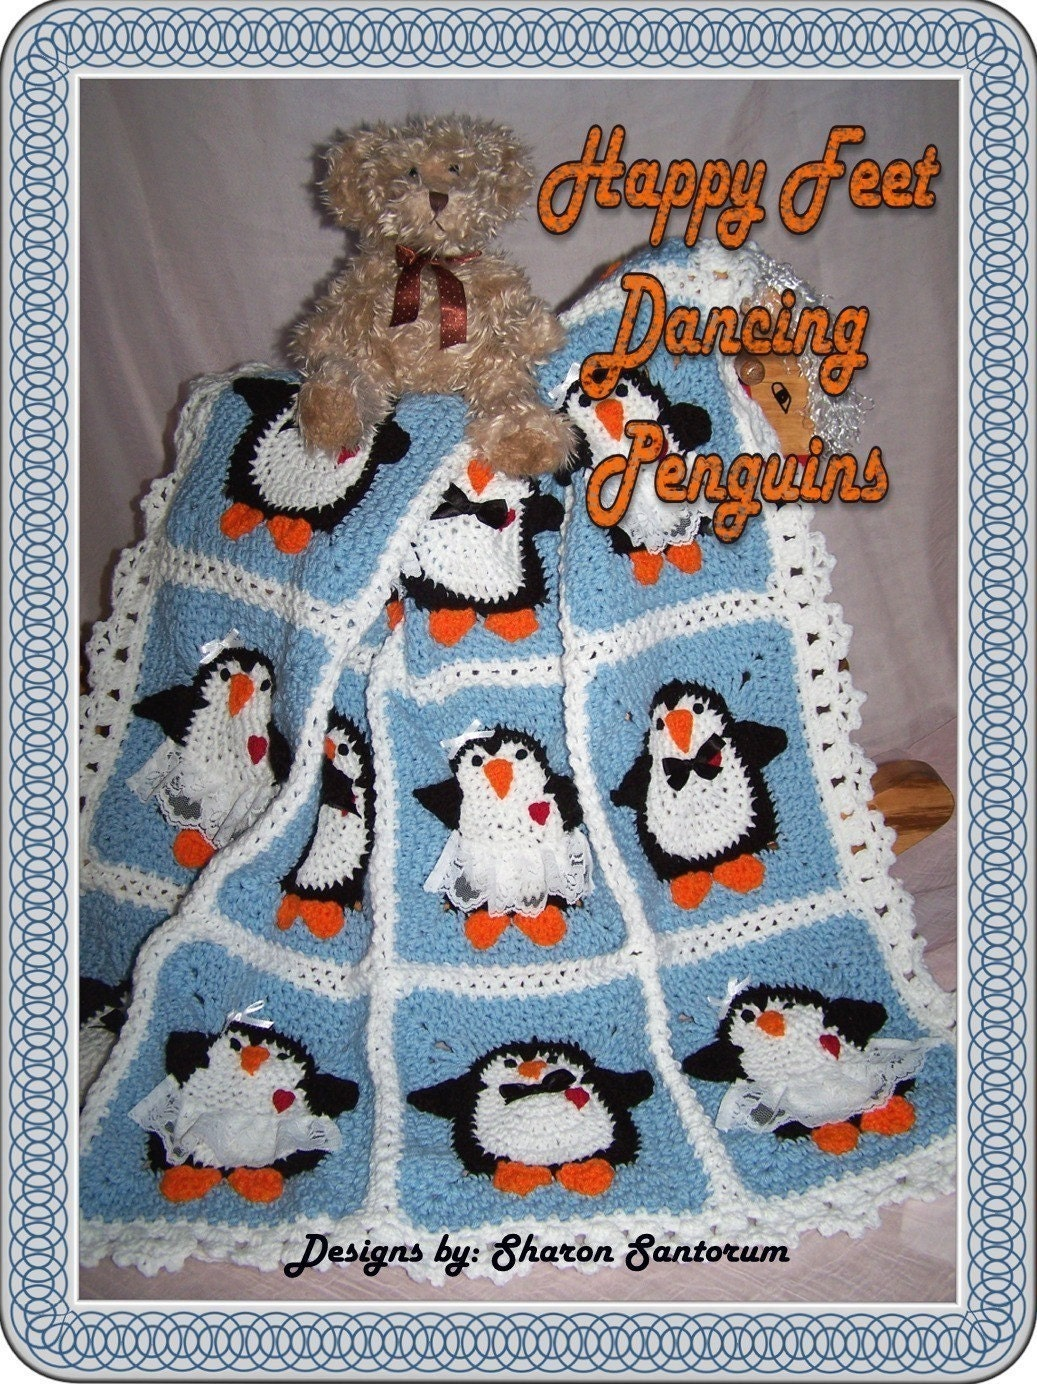 Dancing Penguins Crochet Baby Afghan or Blanket Pattern PDF